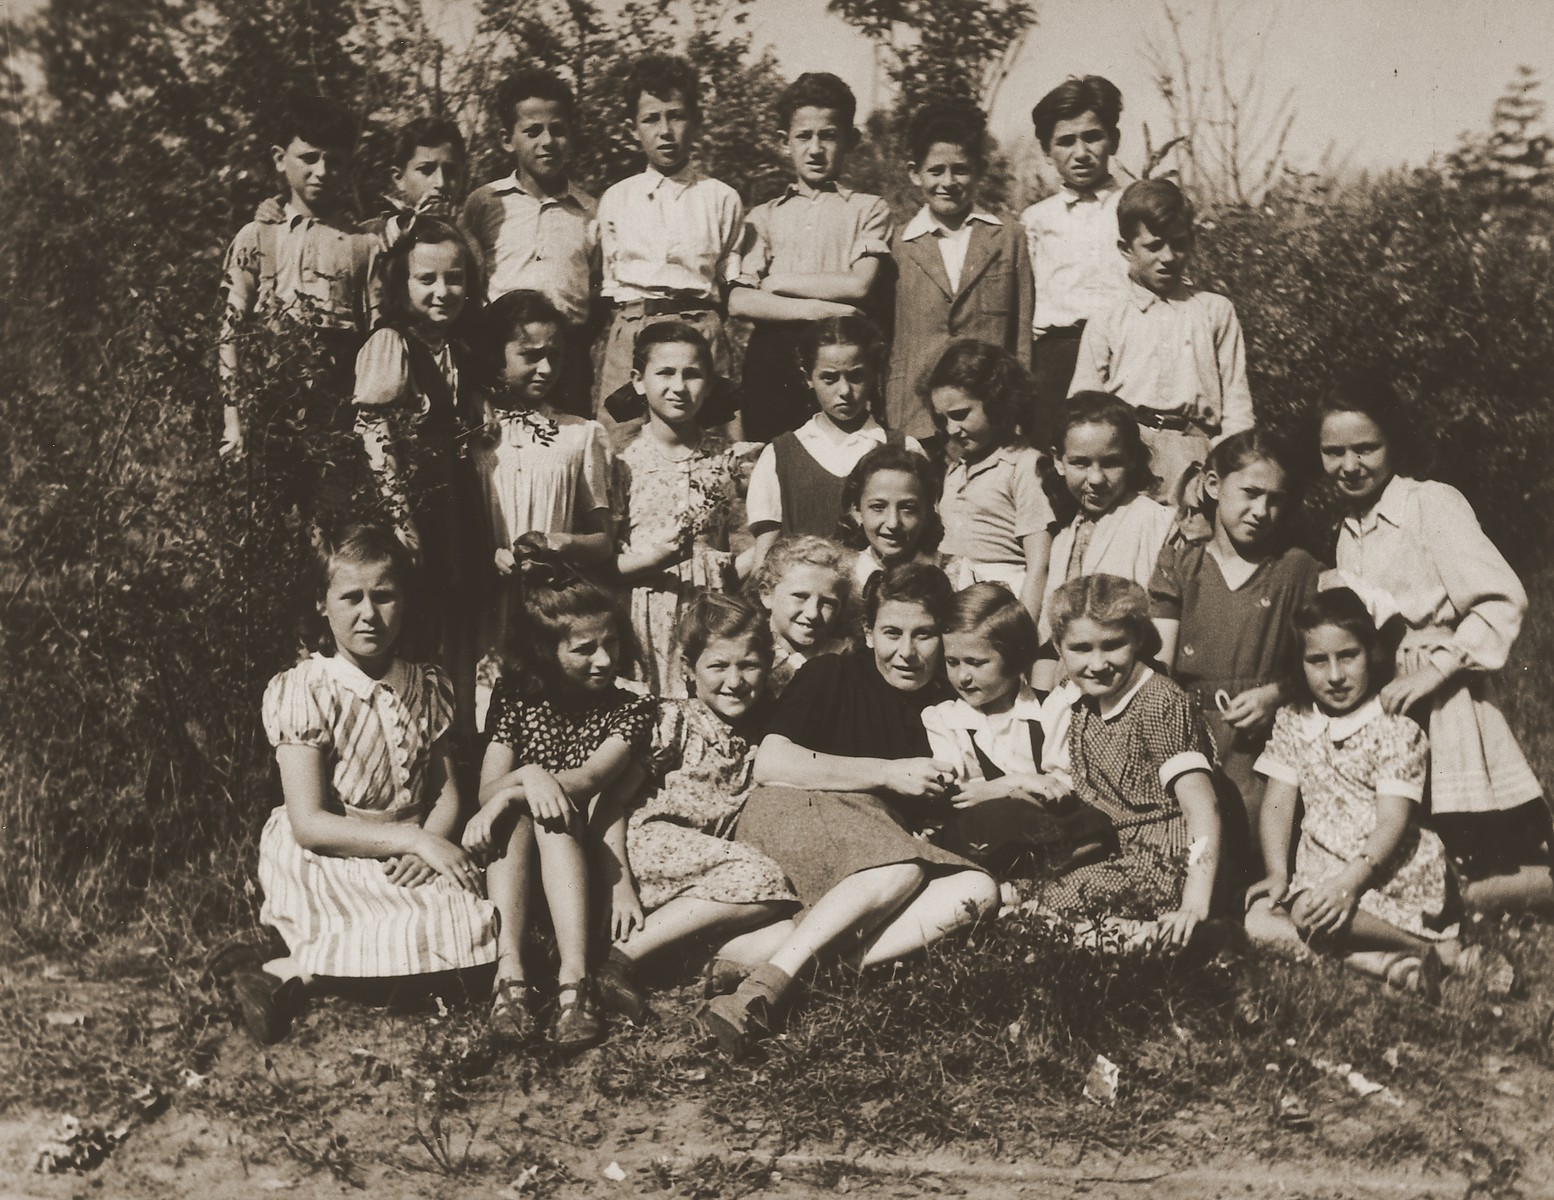 Sima Portnoy, a teacher at the Schlachtensee displaced persons camp, poses with her students outside.